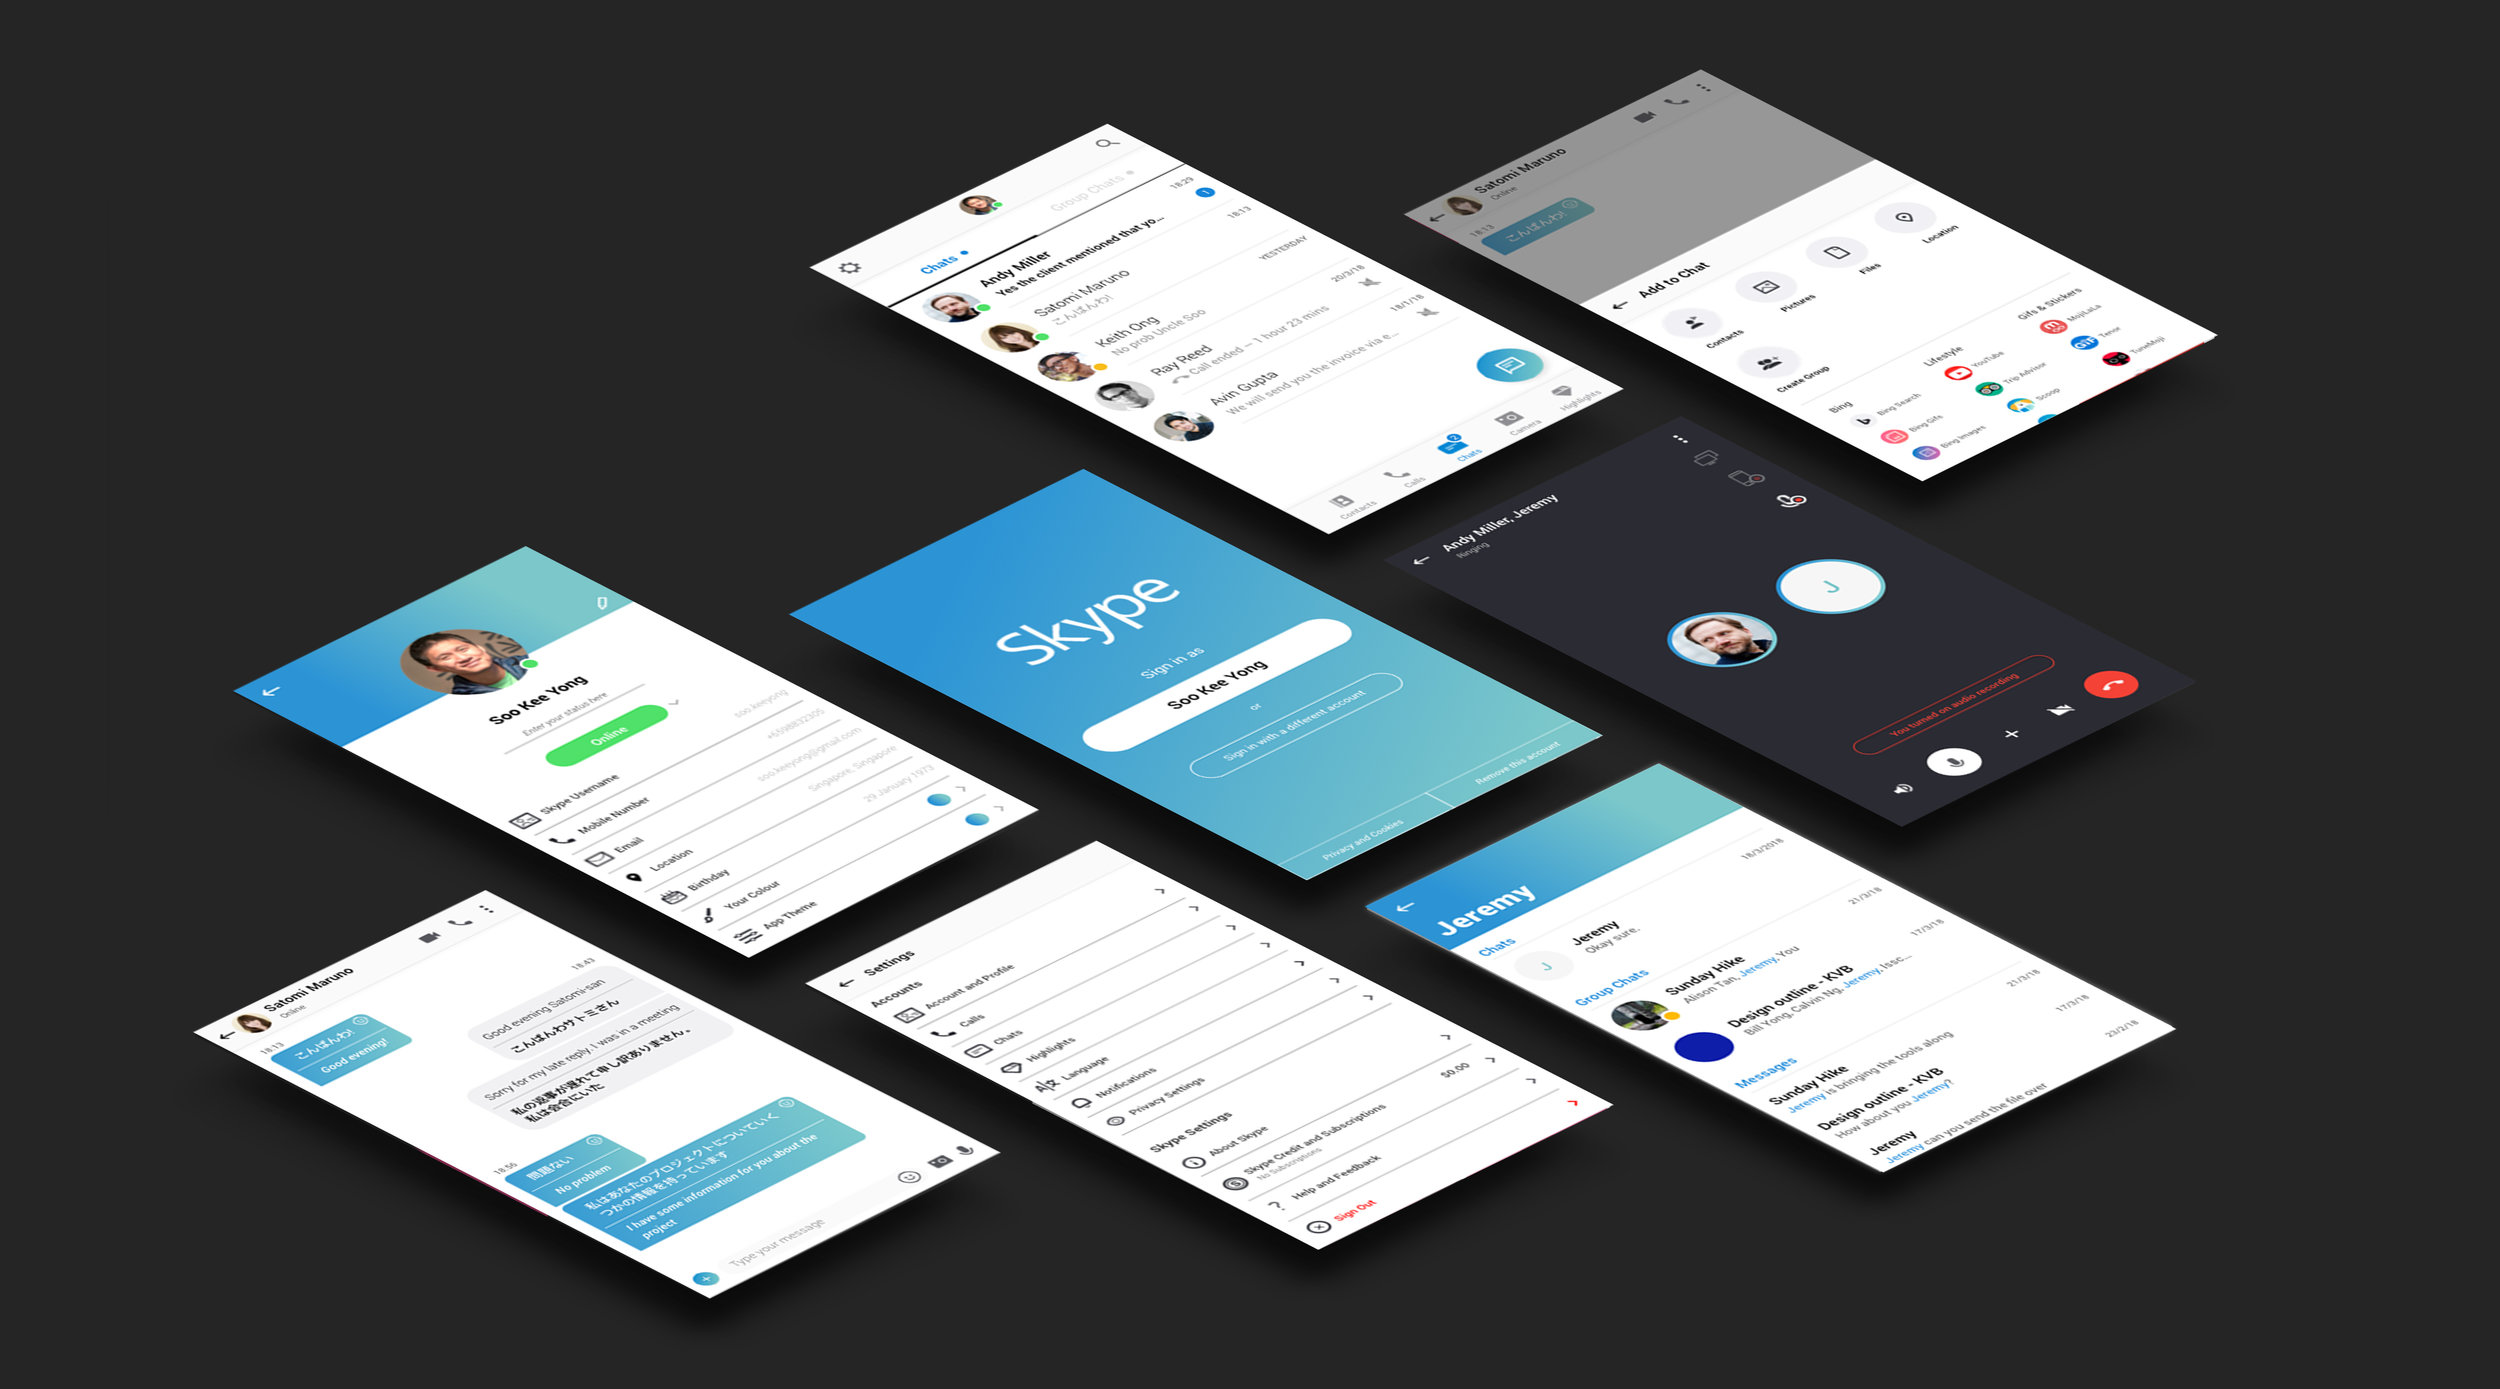 View prototype on Invision  here .